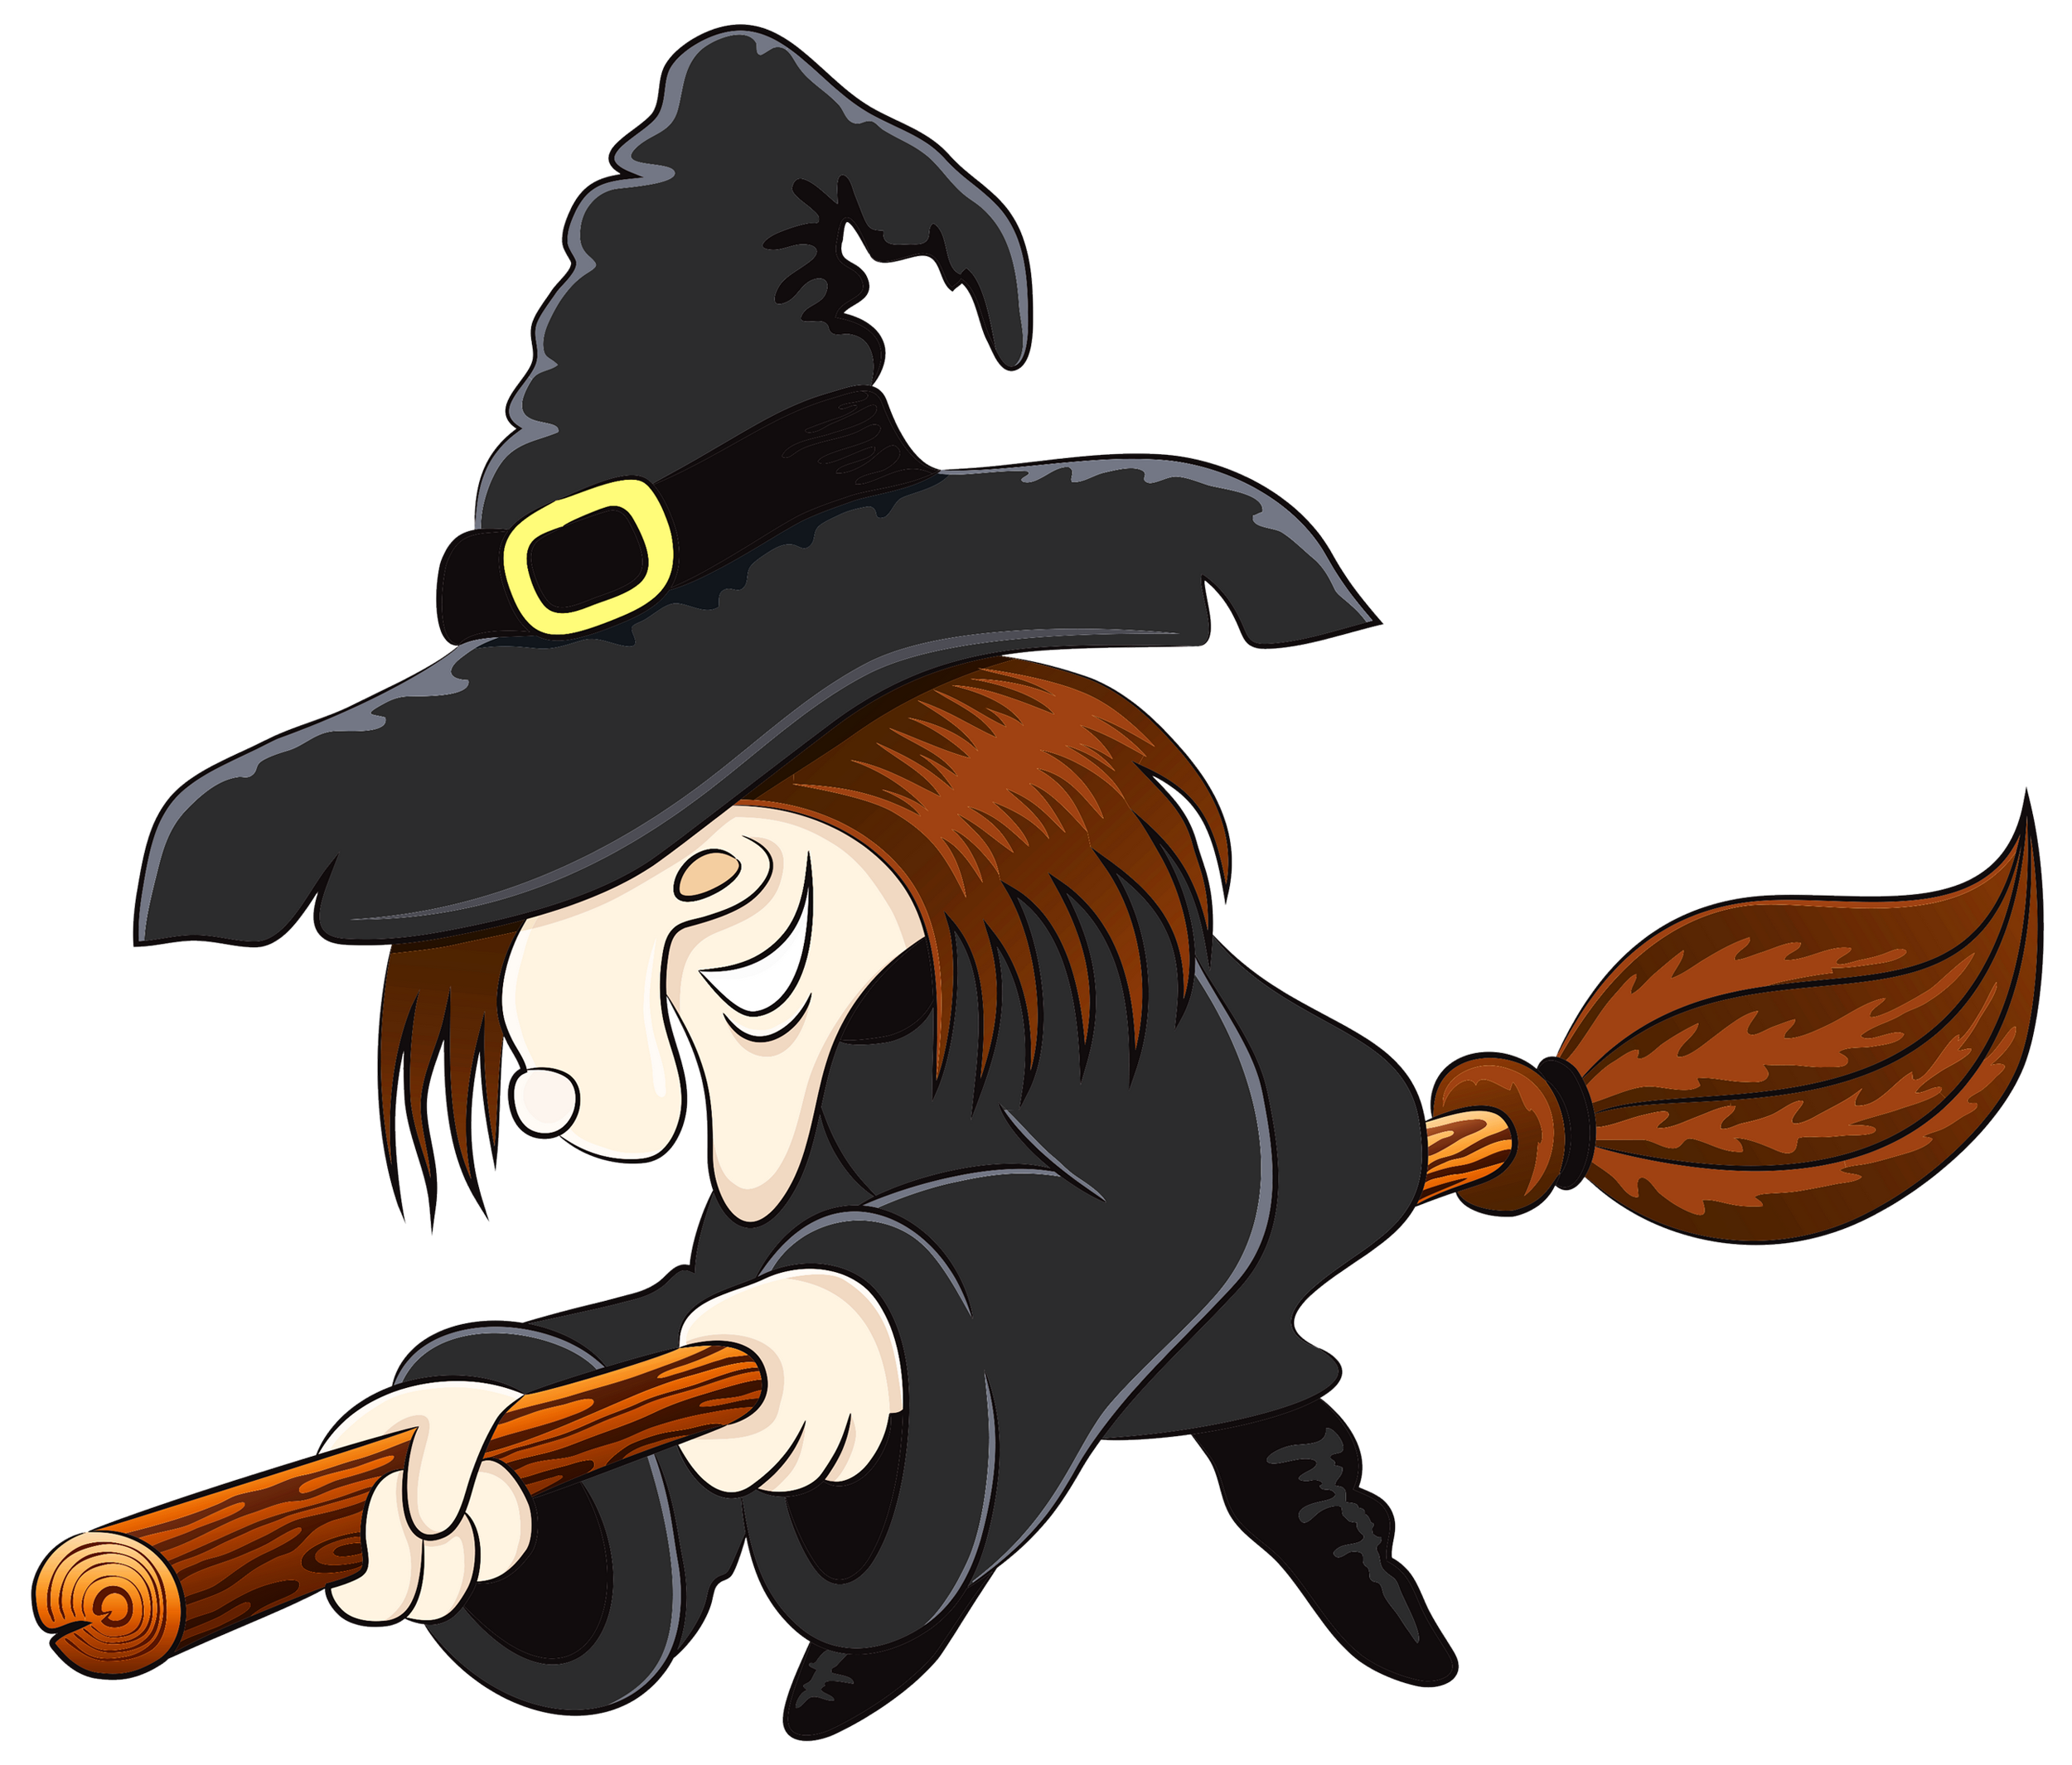 Witch clipart sorceress 0 clipart #13331 witch 0